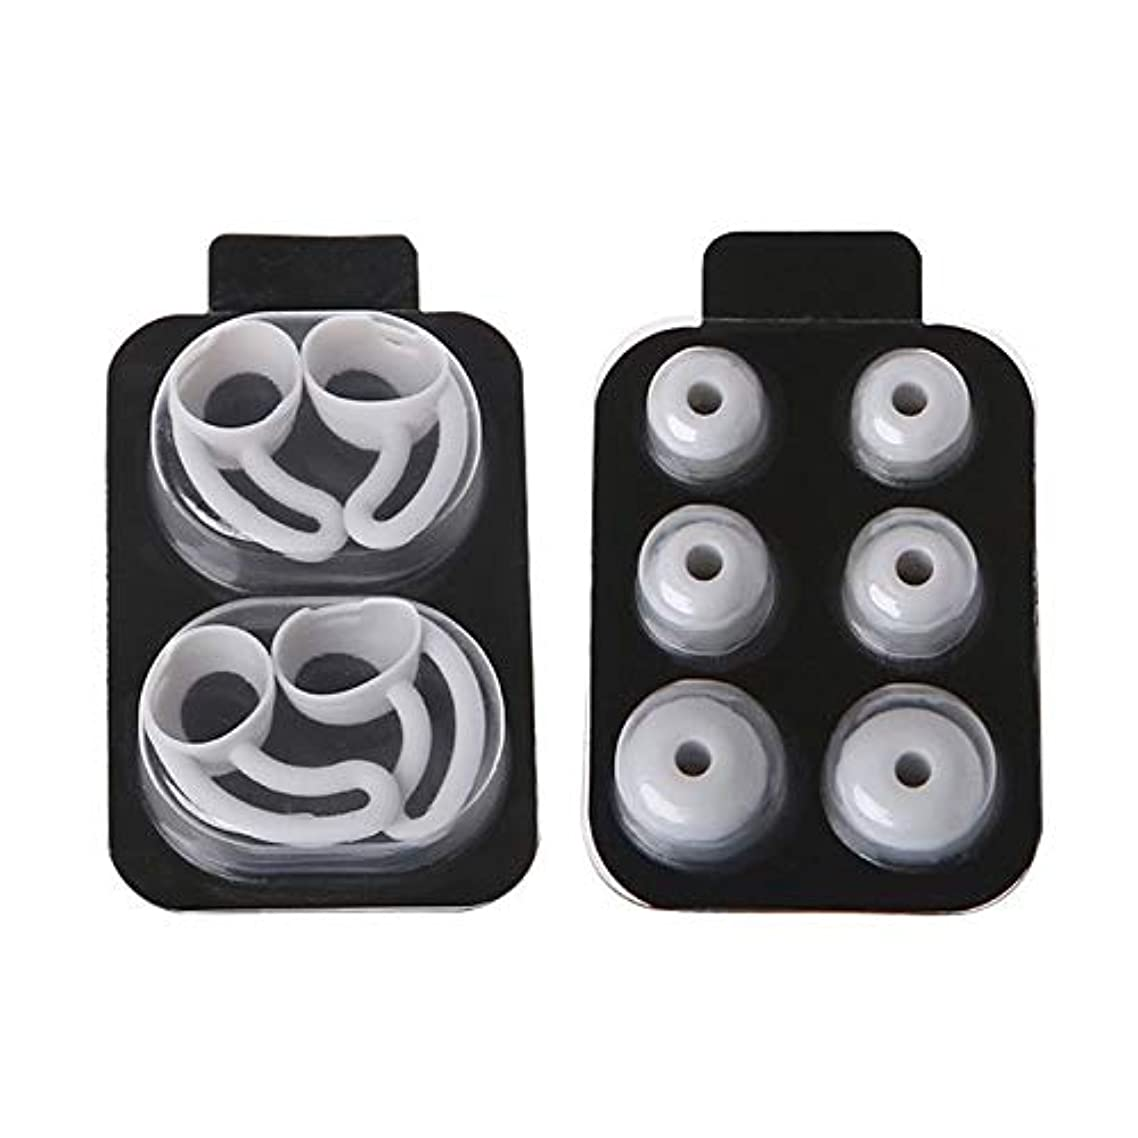 Lovinstar 3pairs Silicone Earbuds Tips Ear Buds EarGels for Beatsx Urbeats Tour Earphone Replacement (S,M,L) (White)